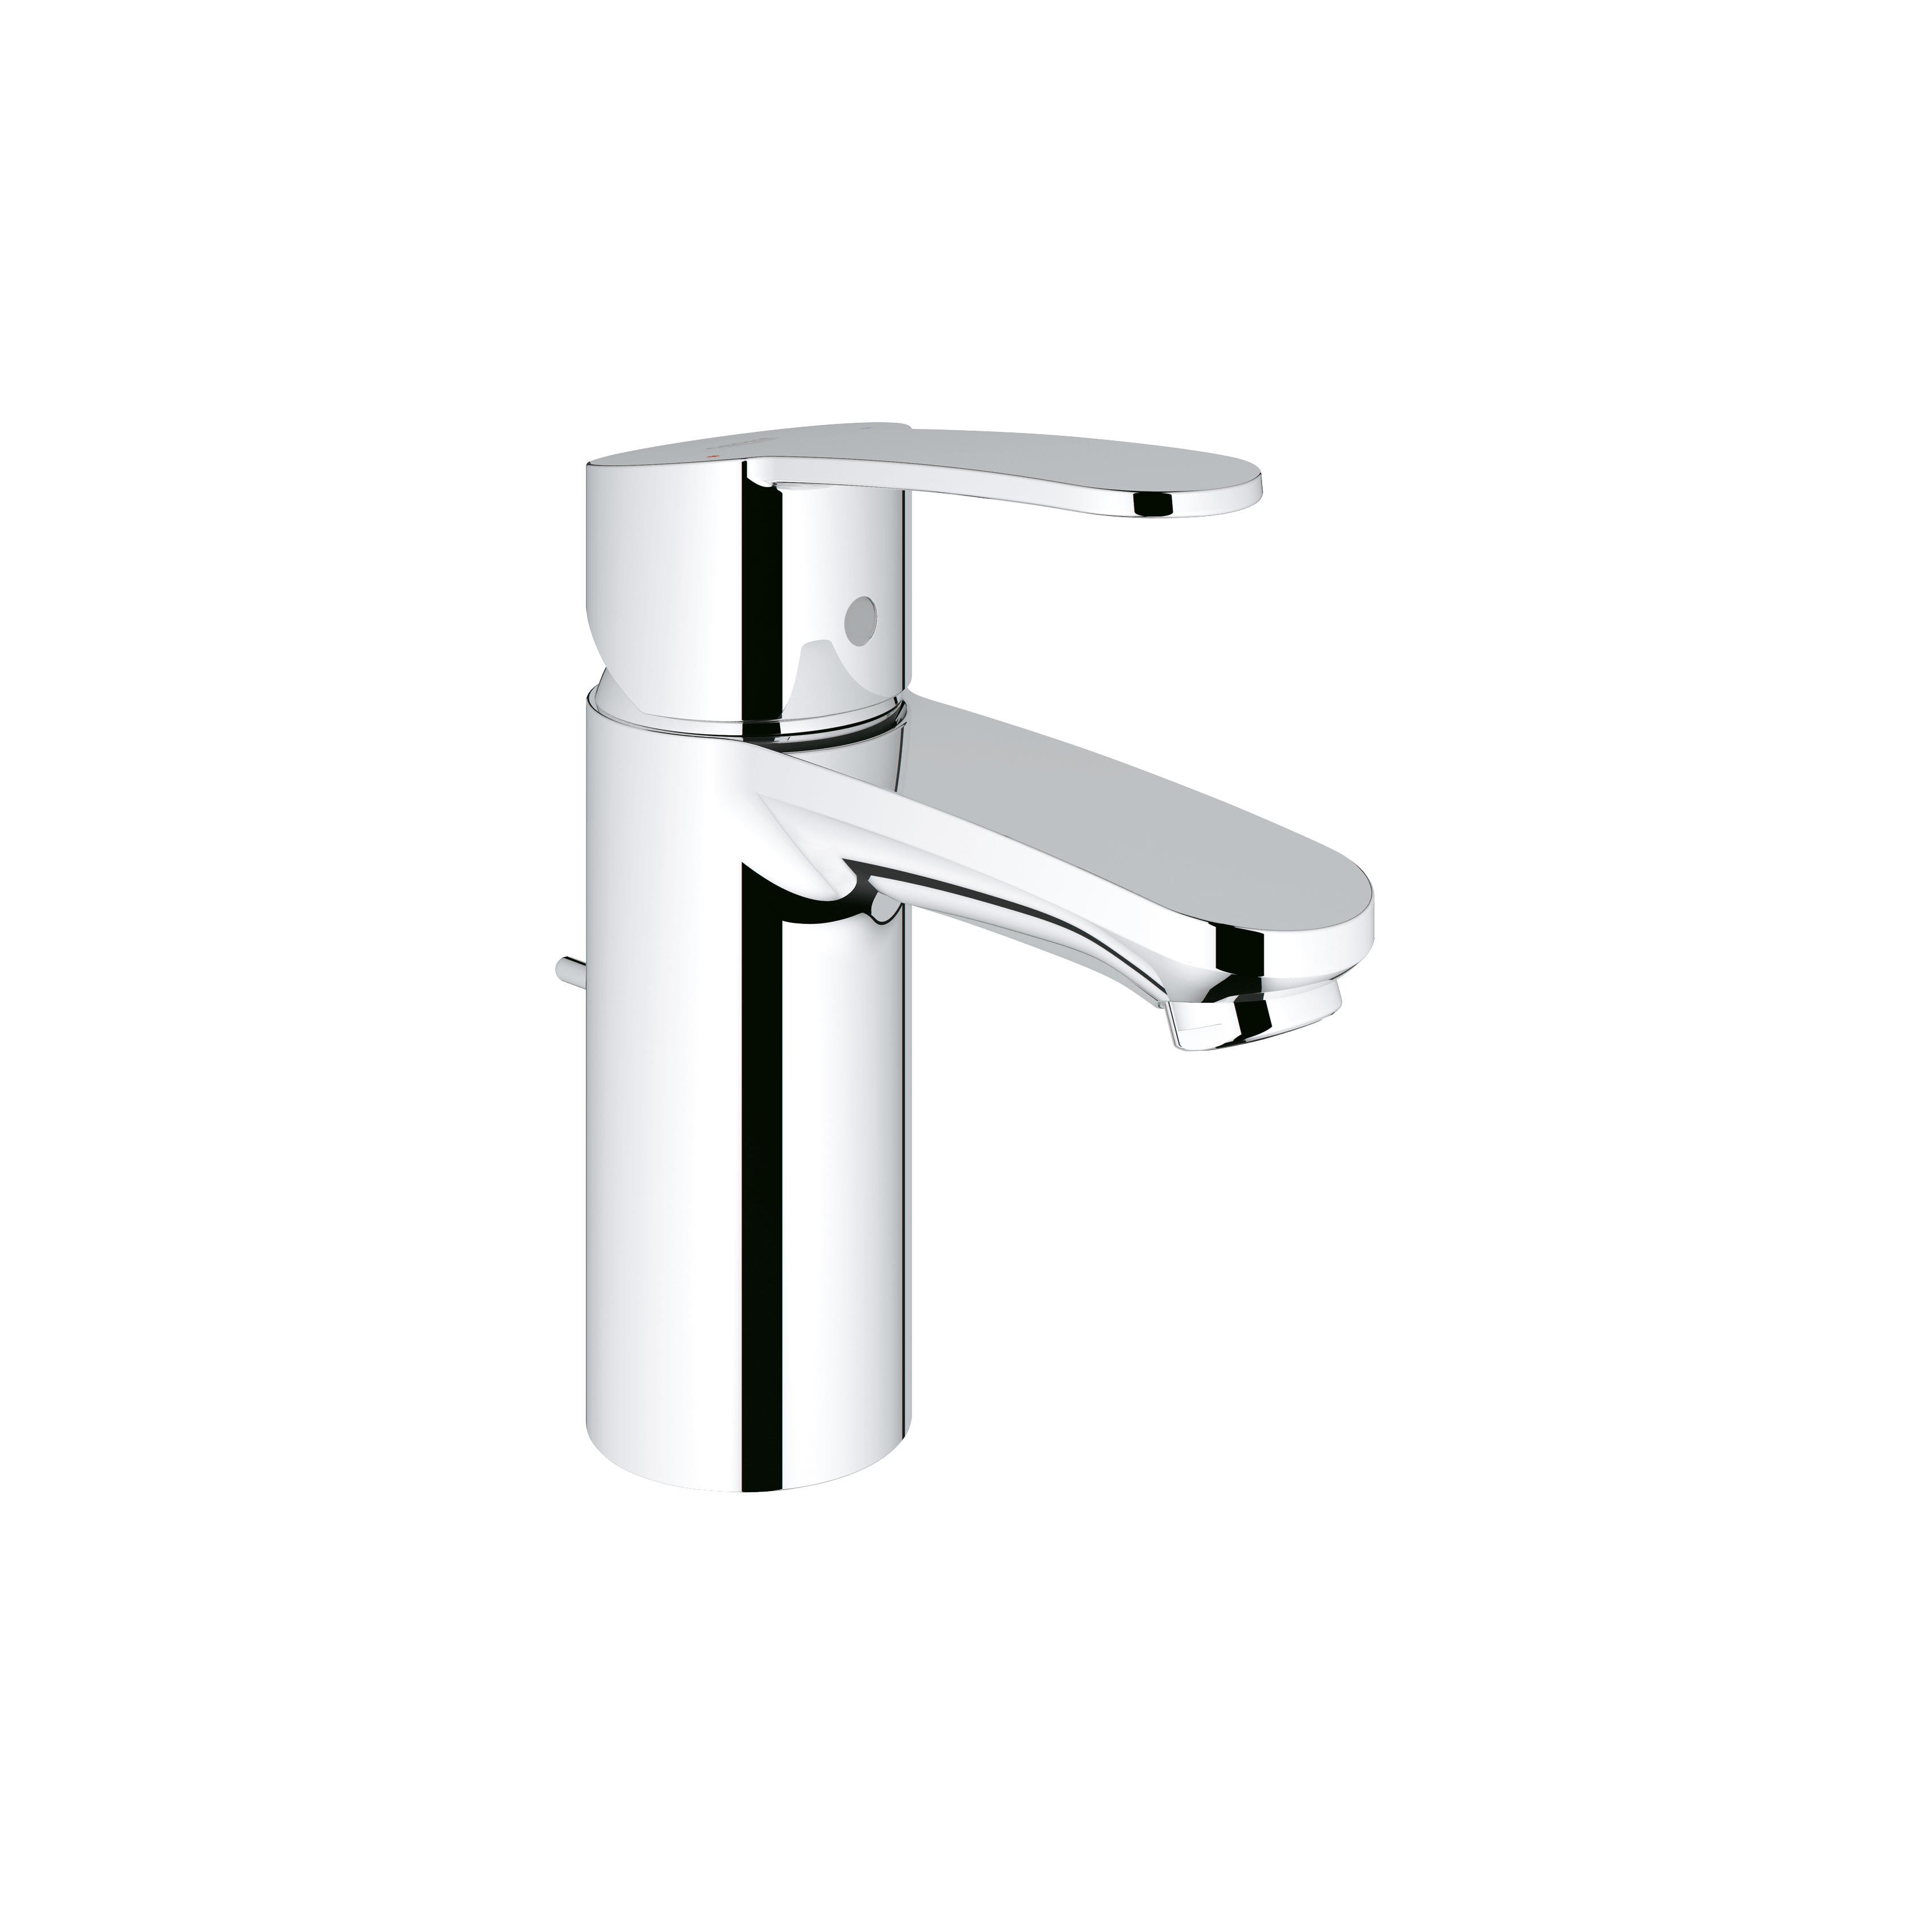 com kitchen blgl h barclay touch brizo with faucets pc product htm litze faucet qualitybath technology smart